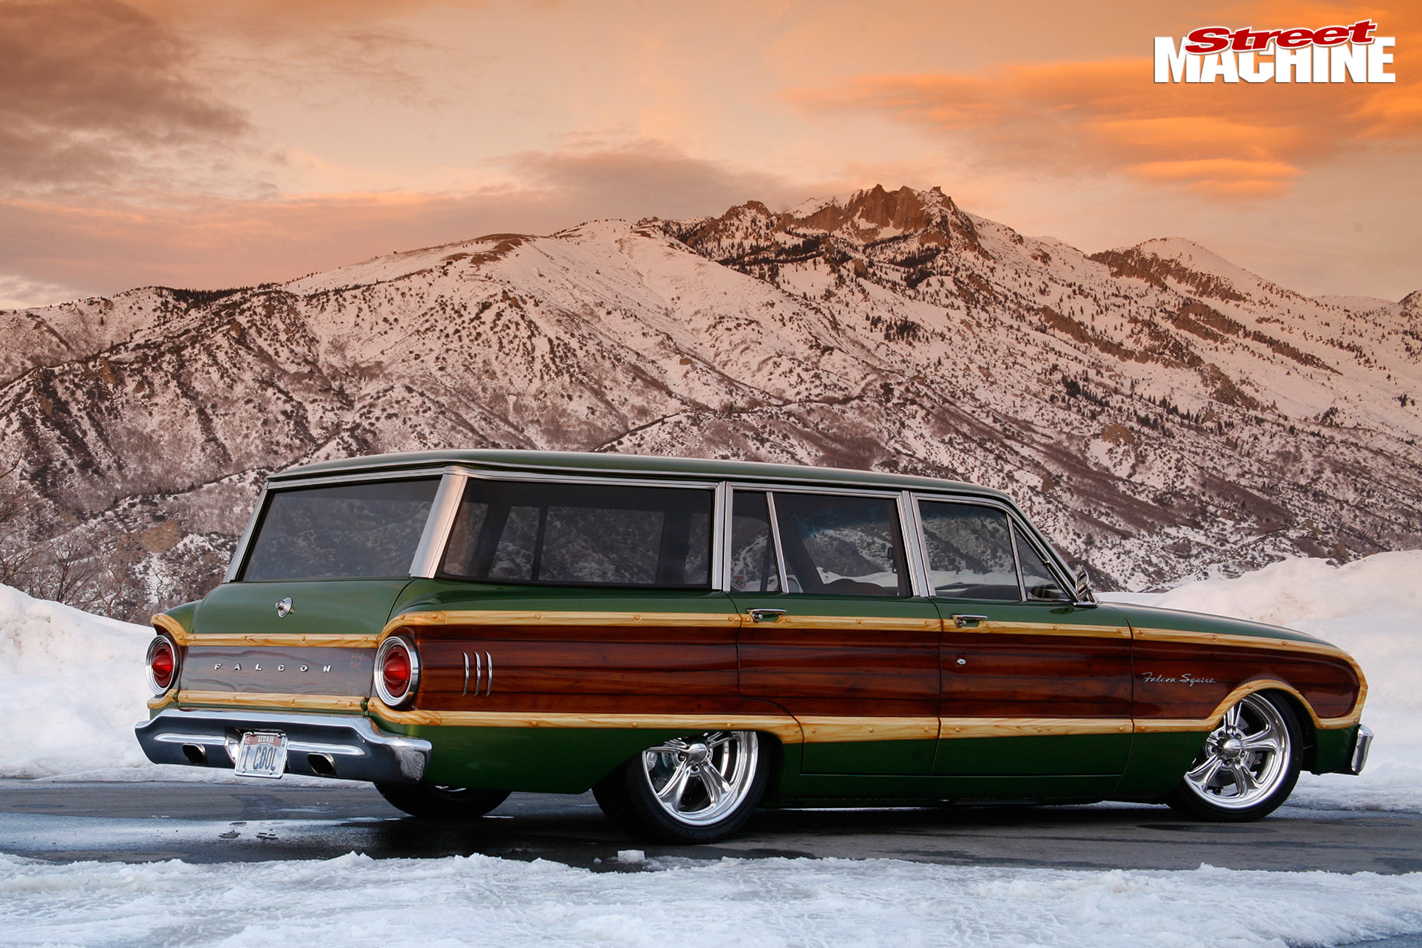 1963-FORD-FALCON-SQUIRE-WAGON-alt